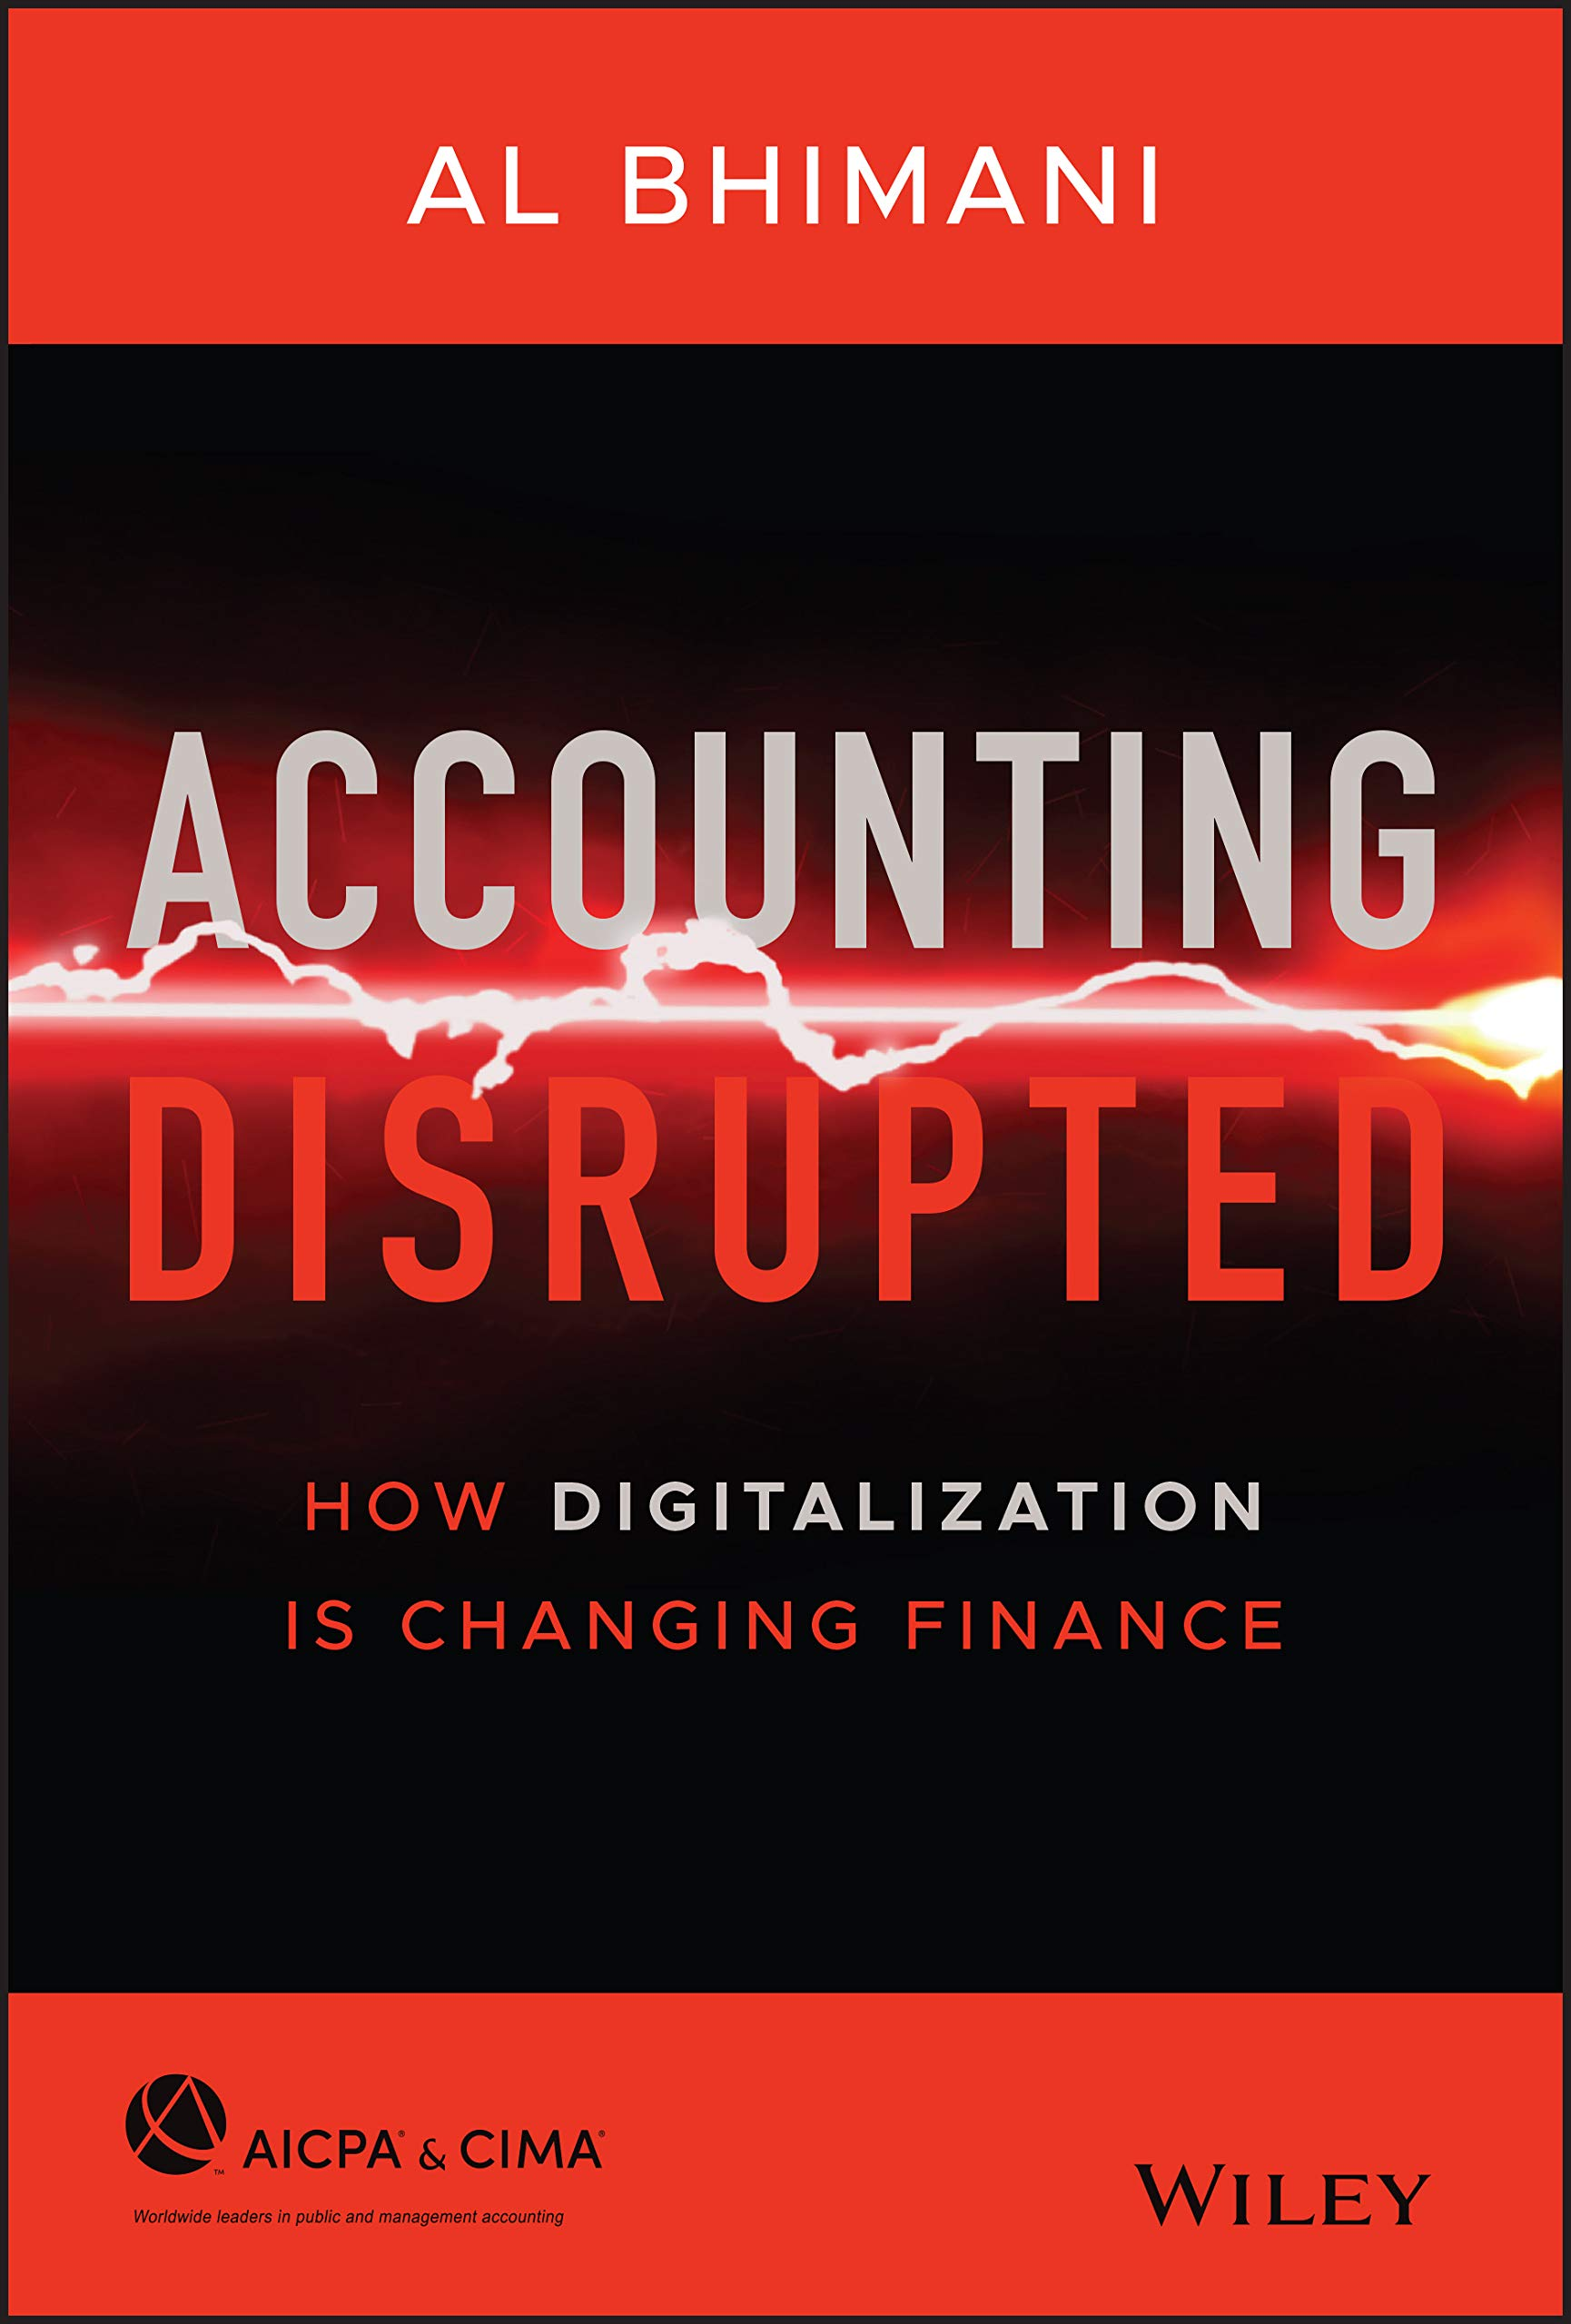 Accounting Disrupted: How Digitalization Is Changing Finance book